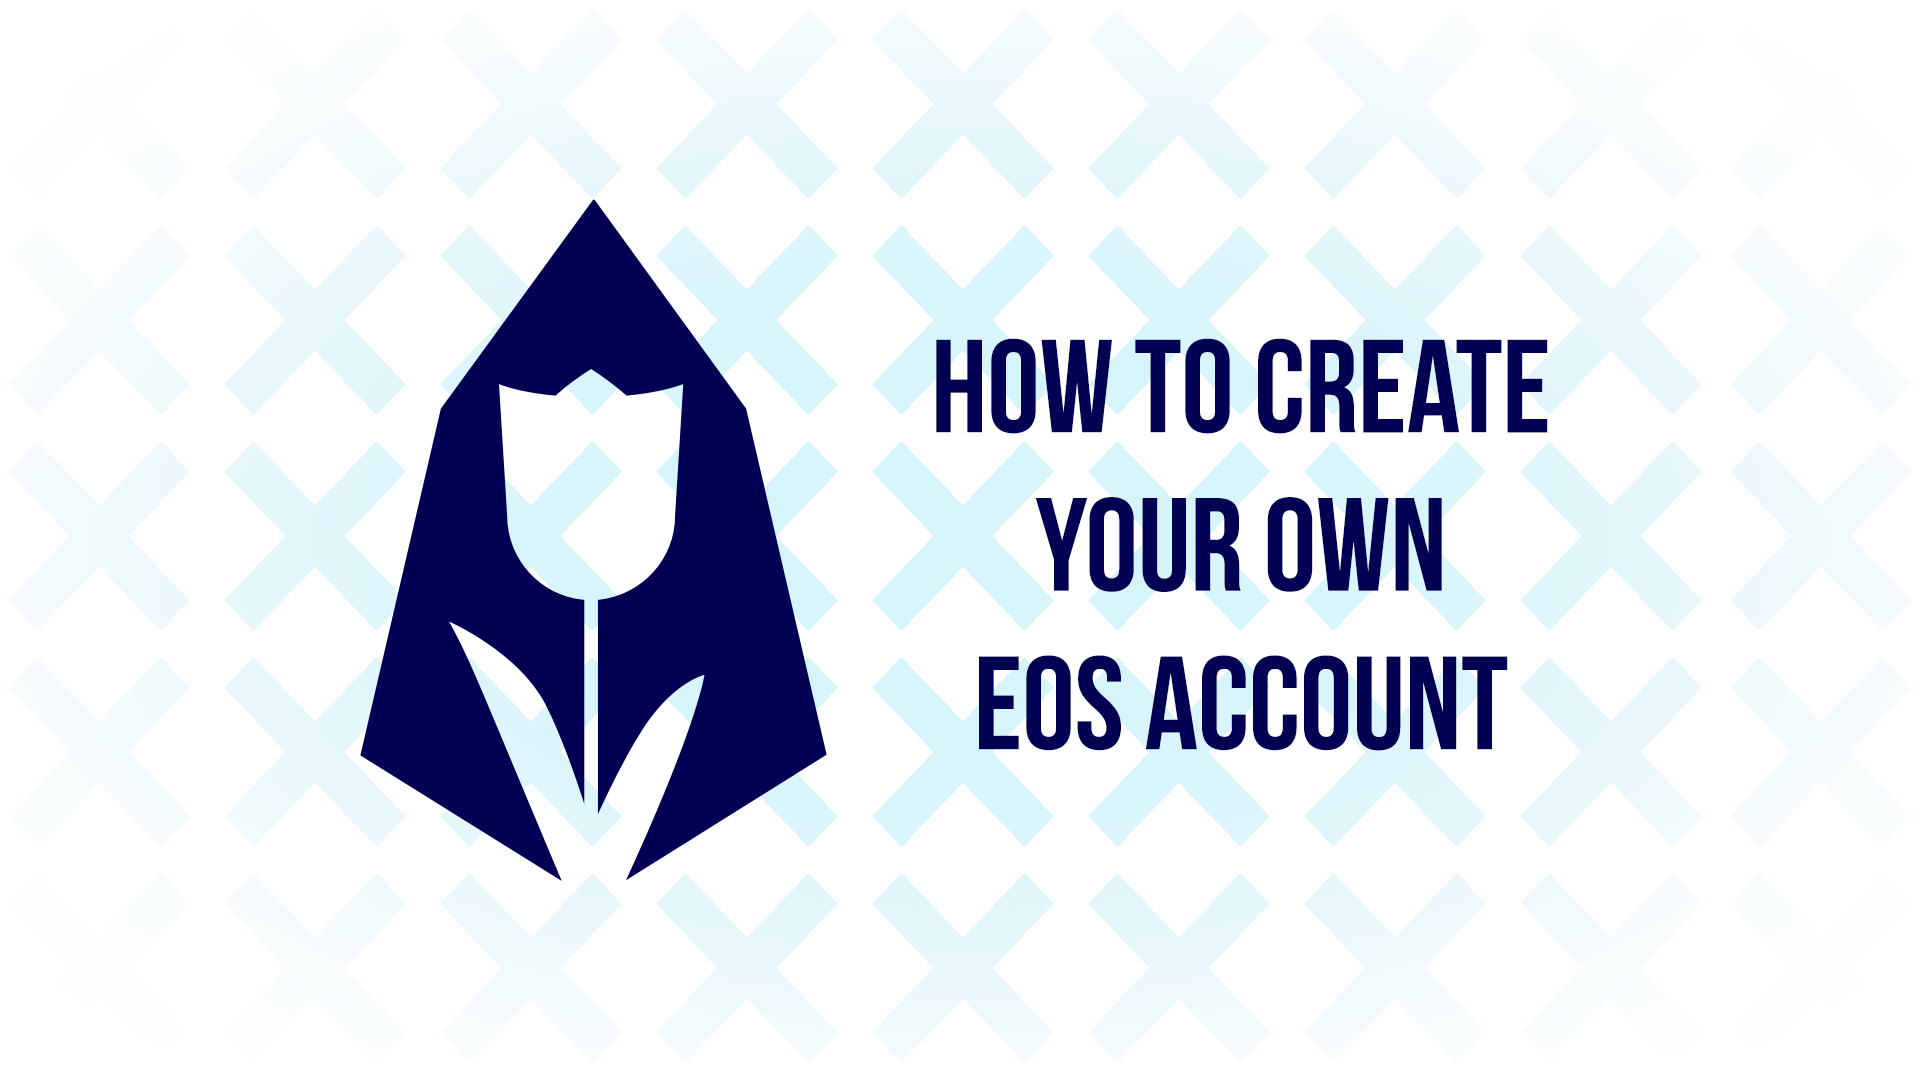 How To Create Your Own EOS Account